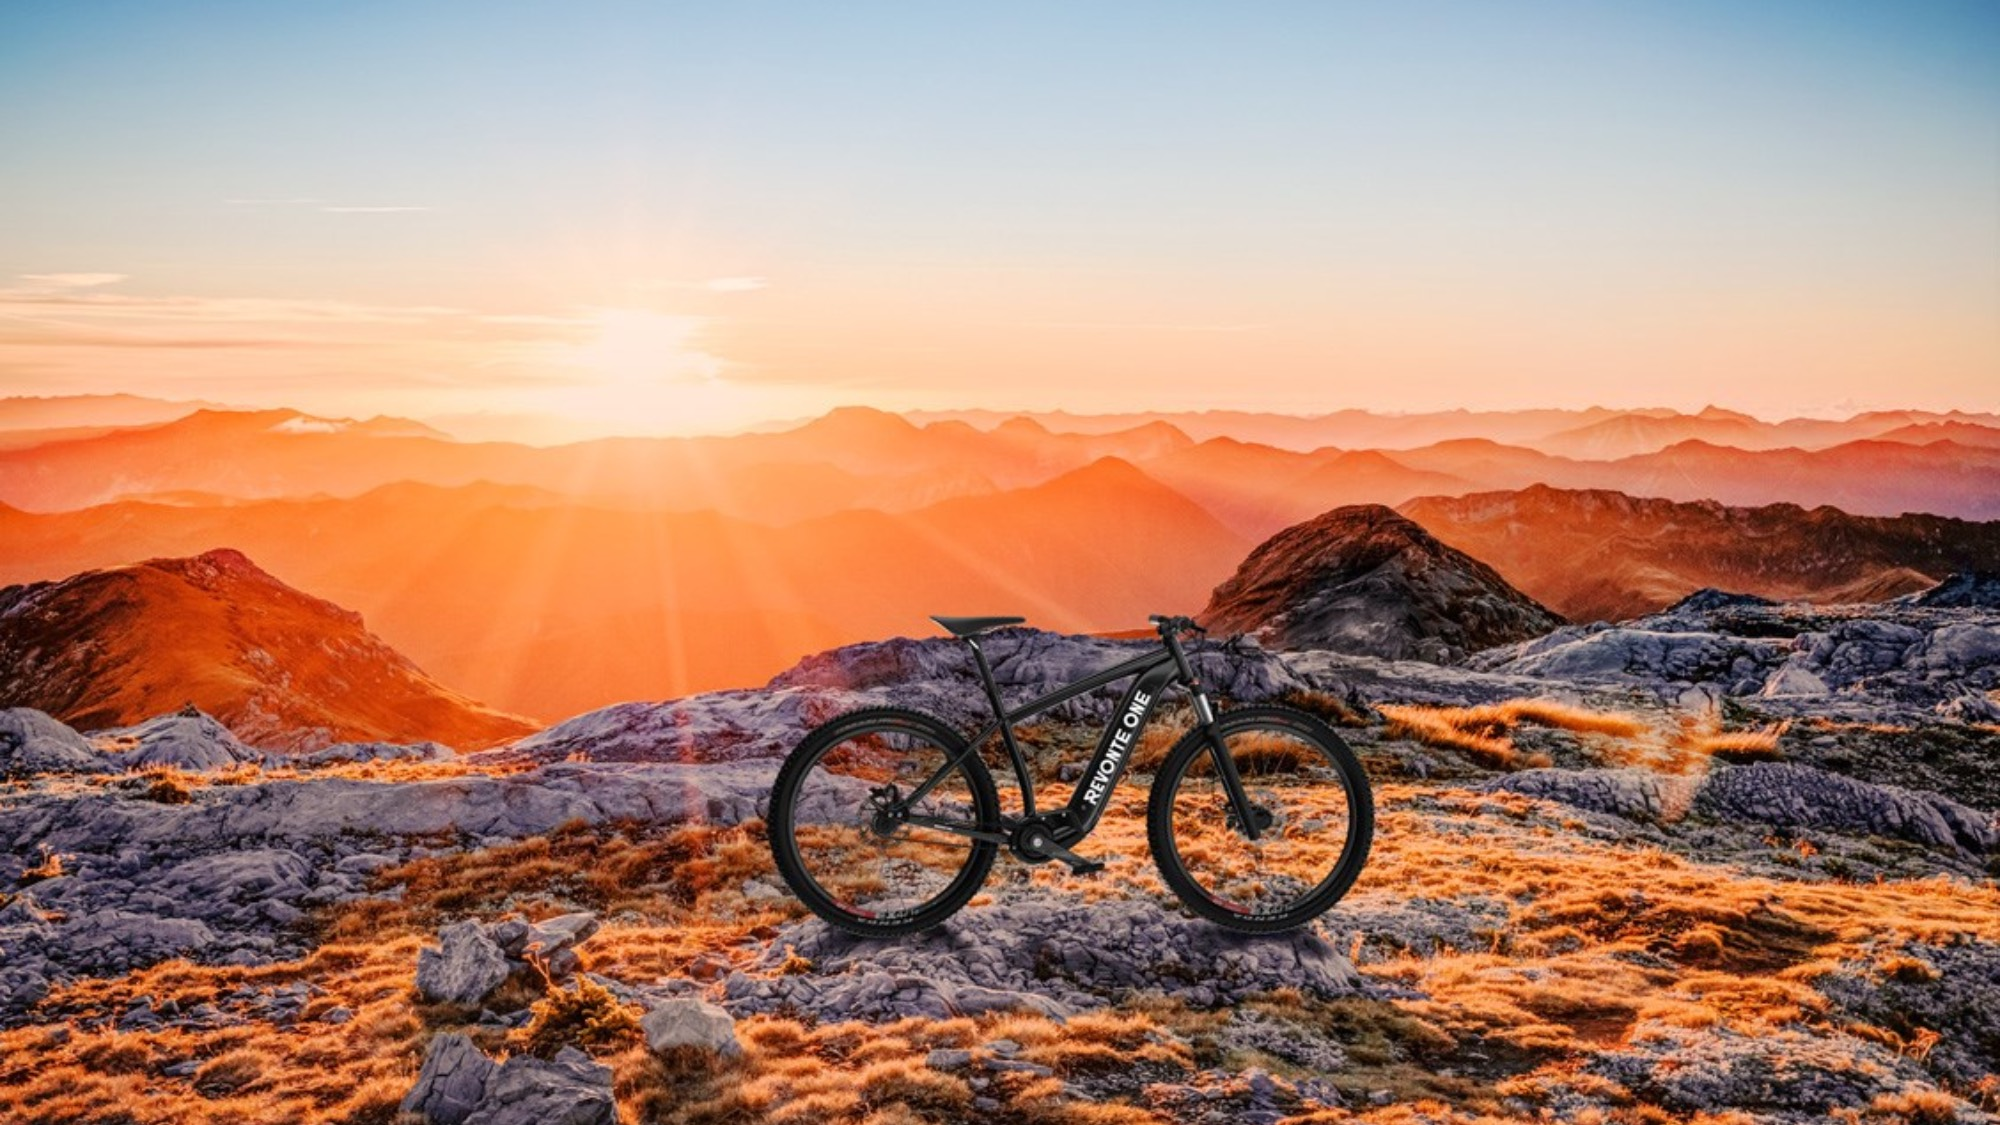 A bike standing on a mountain at sunset